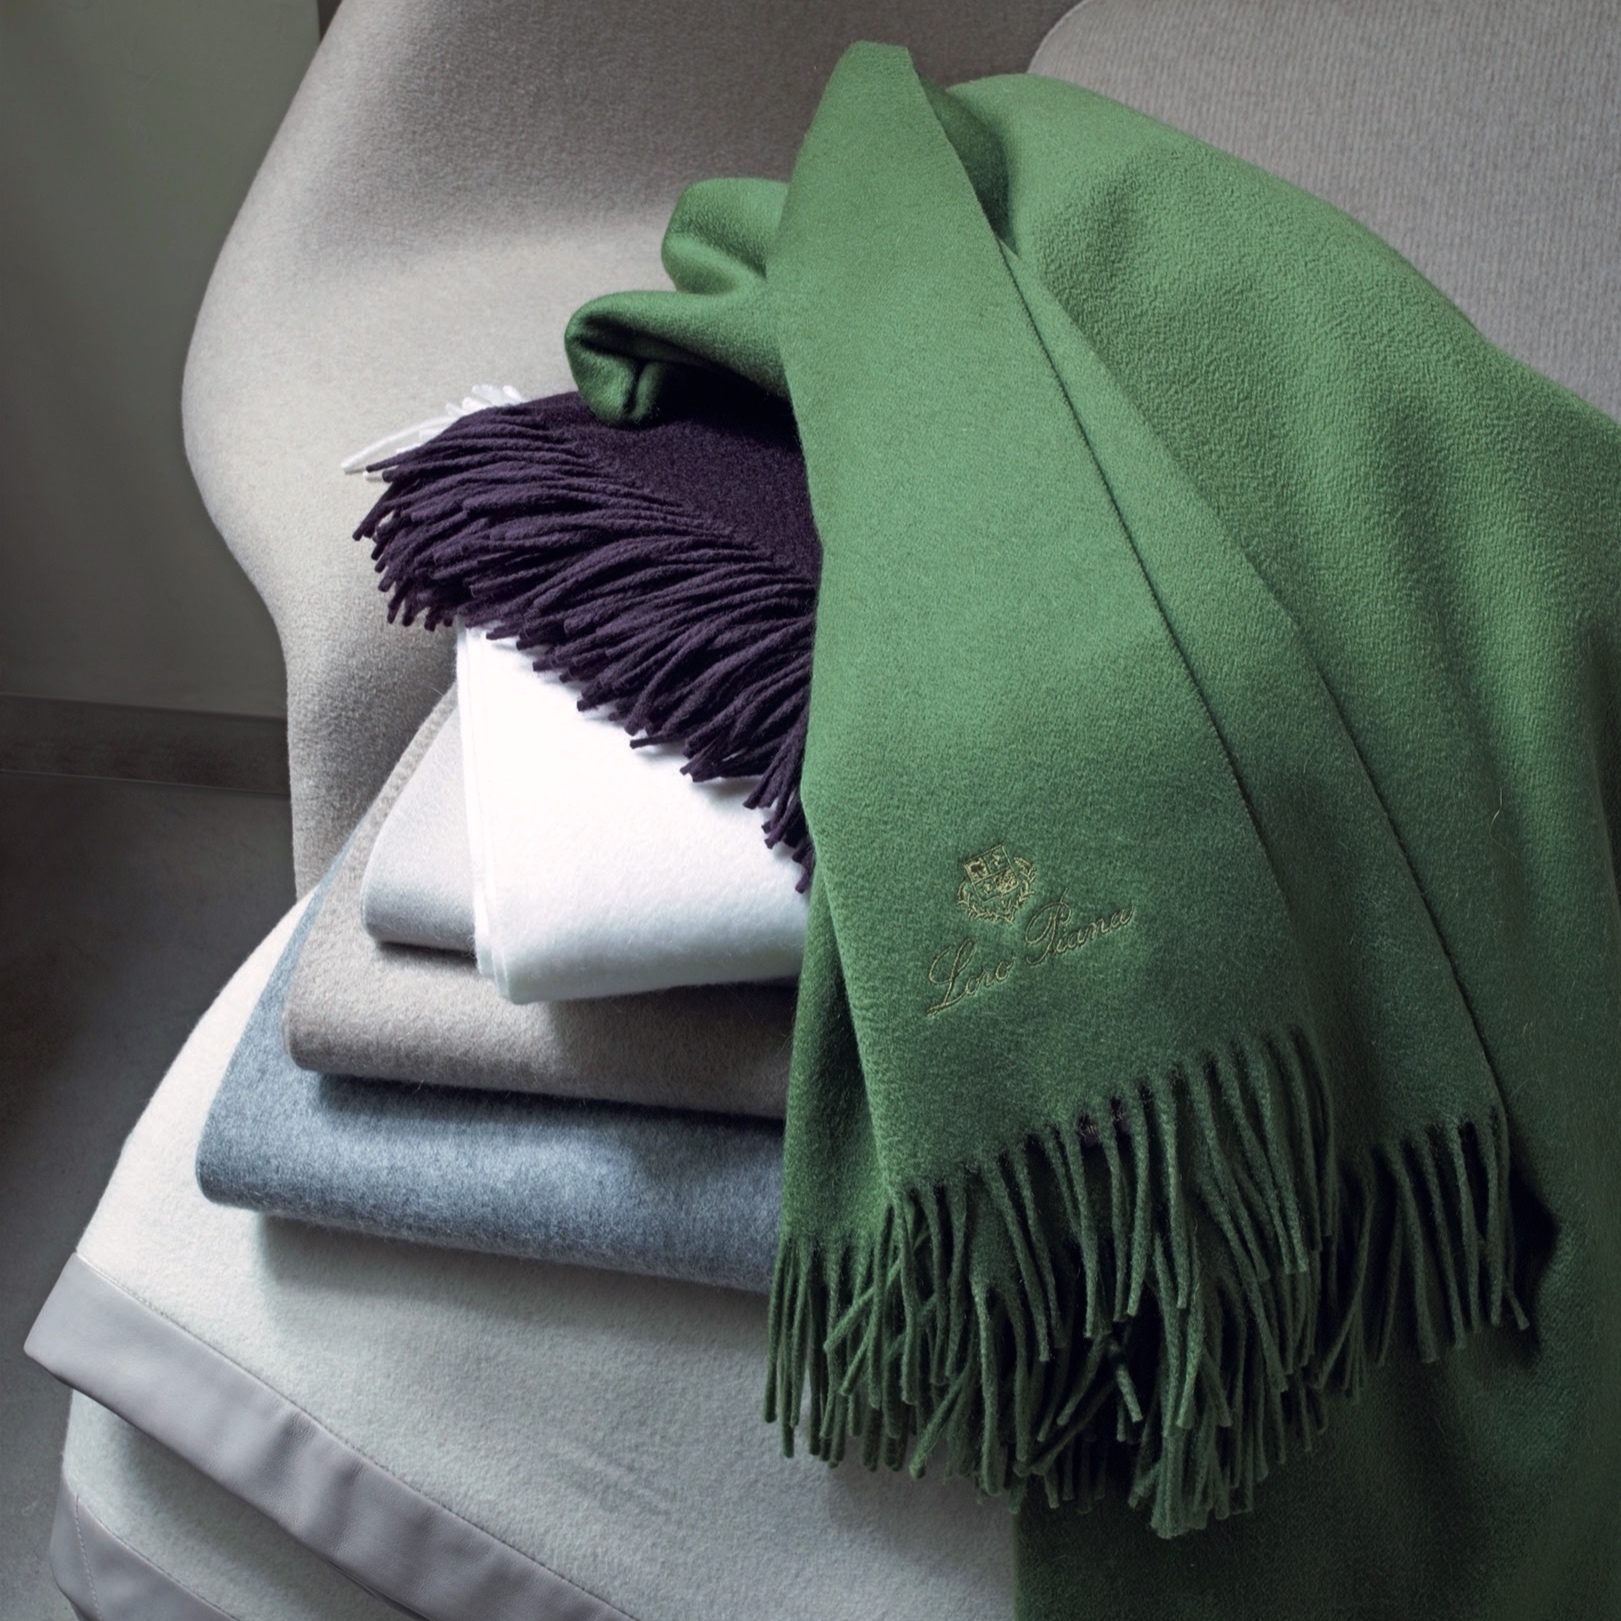 Loro Piana Interiors - Exclusive fabrics in cashmere, merino wool, cotton, silk and linen for decor and furnishing, supplied to architects, interior designers and discerning clients. Loro Piana offers unique resources for creating living spaces imbued with the same effortless elegance and personality its clothing is renowned for.